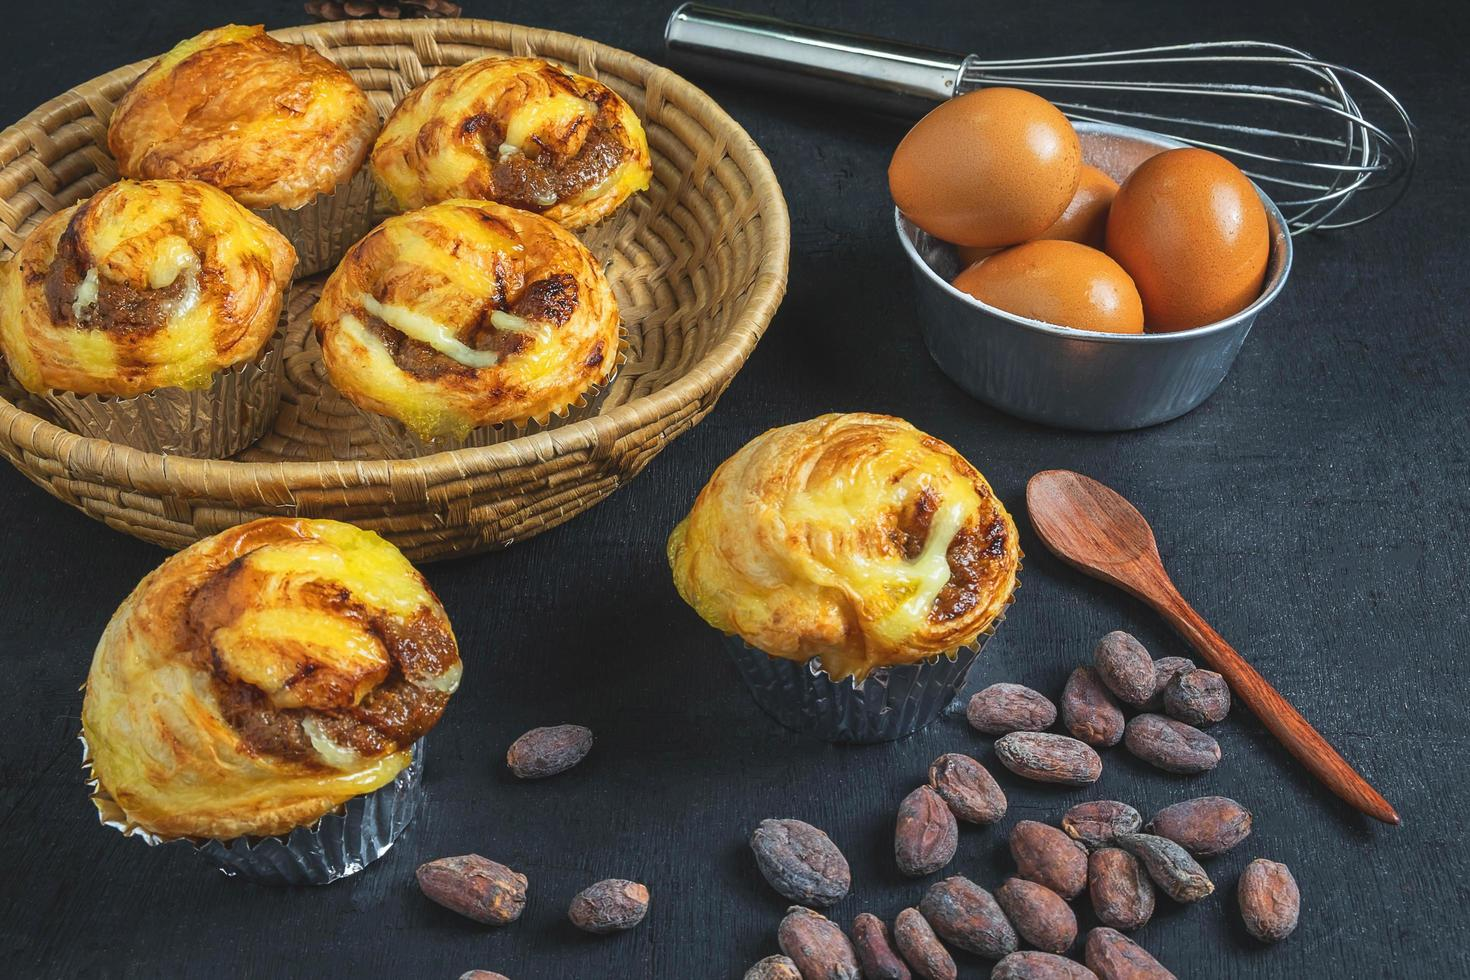 Baked breakfast pastries photo